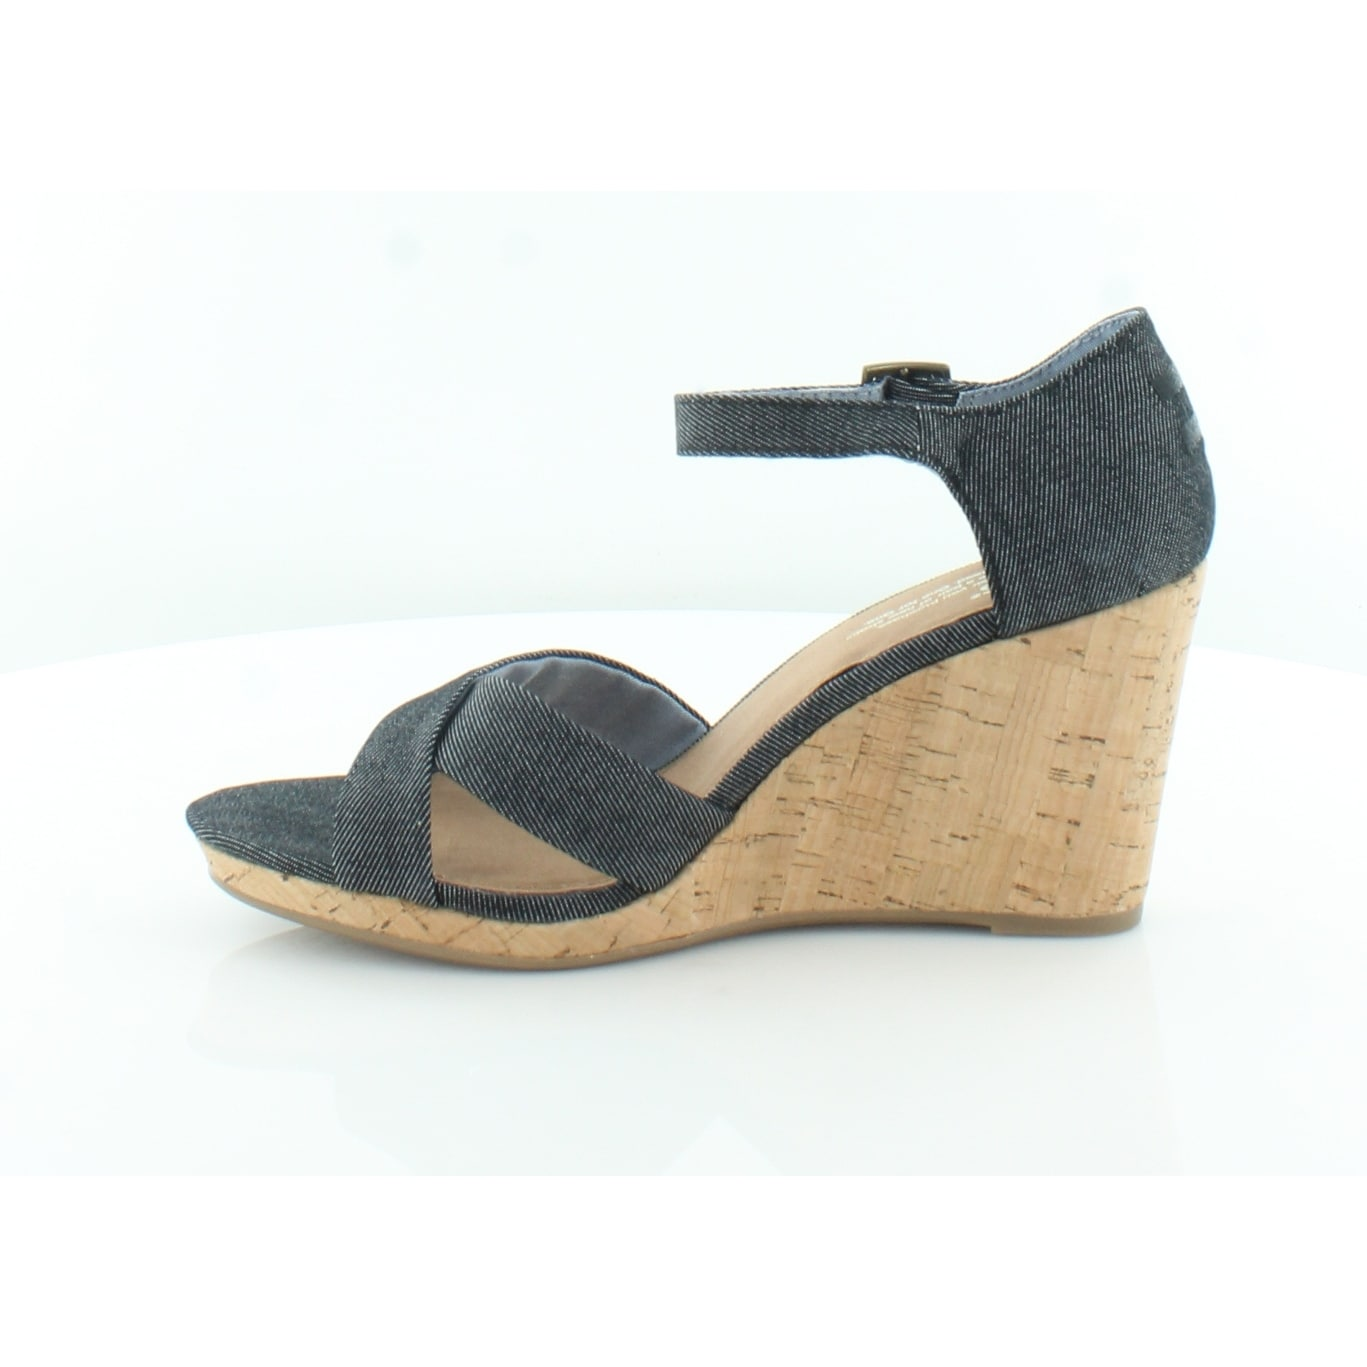 a35712f01e1 Shop TOMS Classic Sienna Women s Heels Black Denim - 9.5 - Free Shipping  Today - Overstock - 27568526